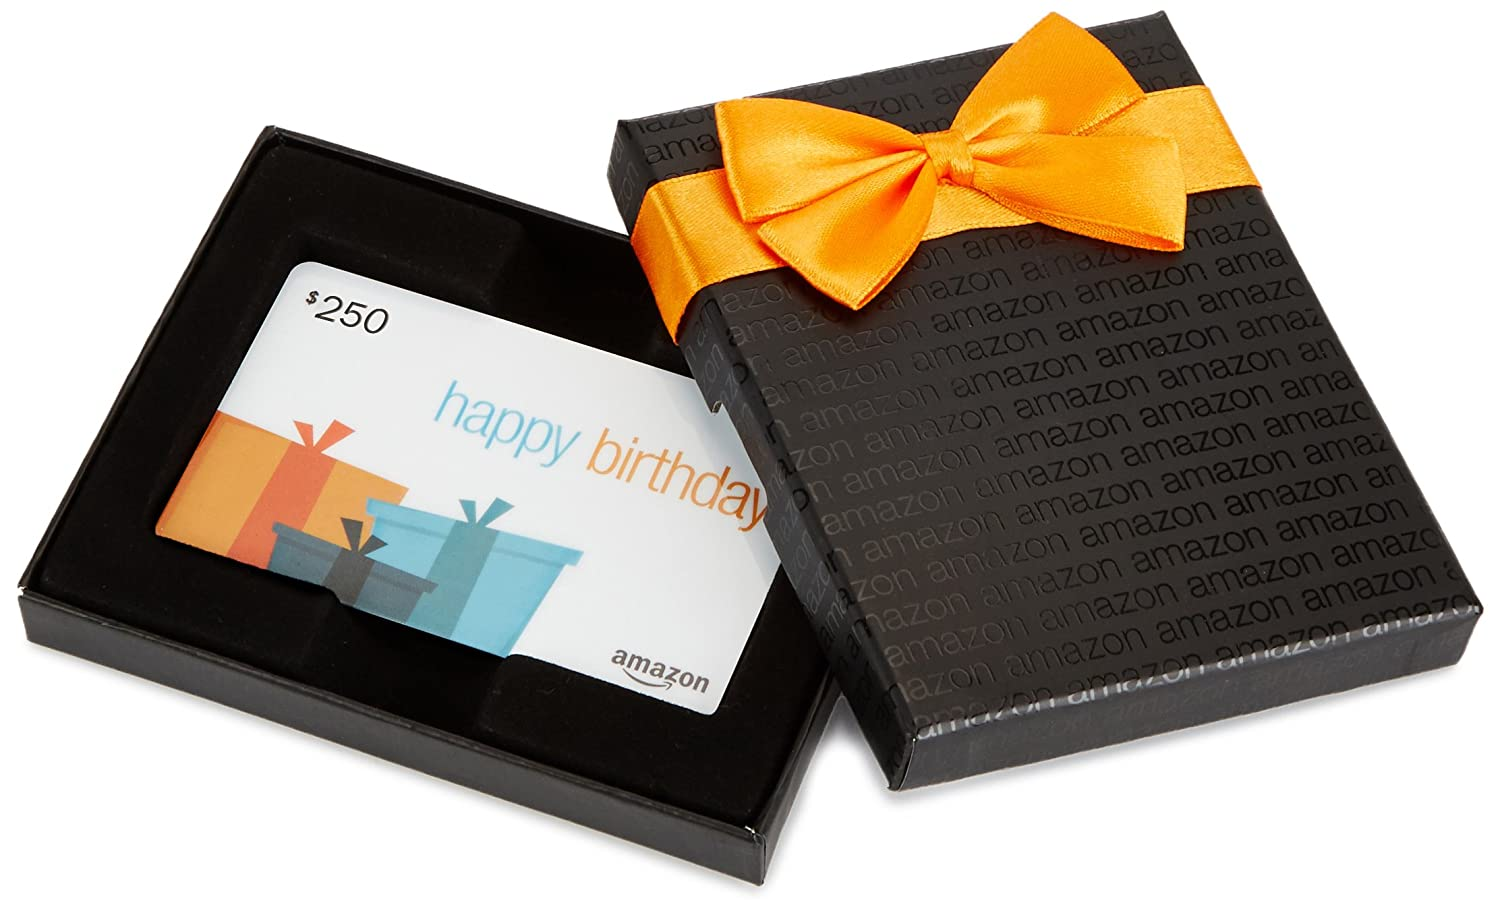 Amazon.com $250 Gift Card in a Black Gift Box (Birthday Presents Card Design)